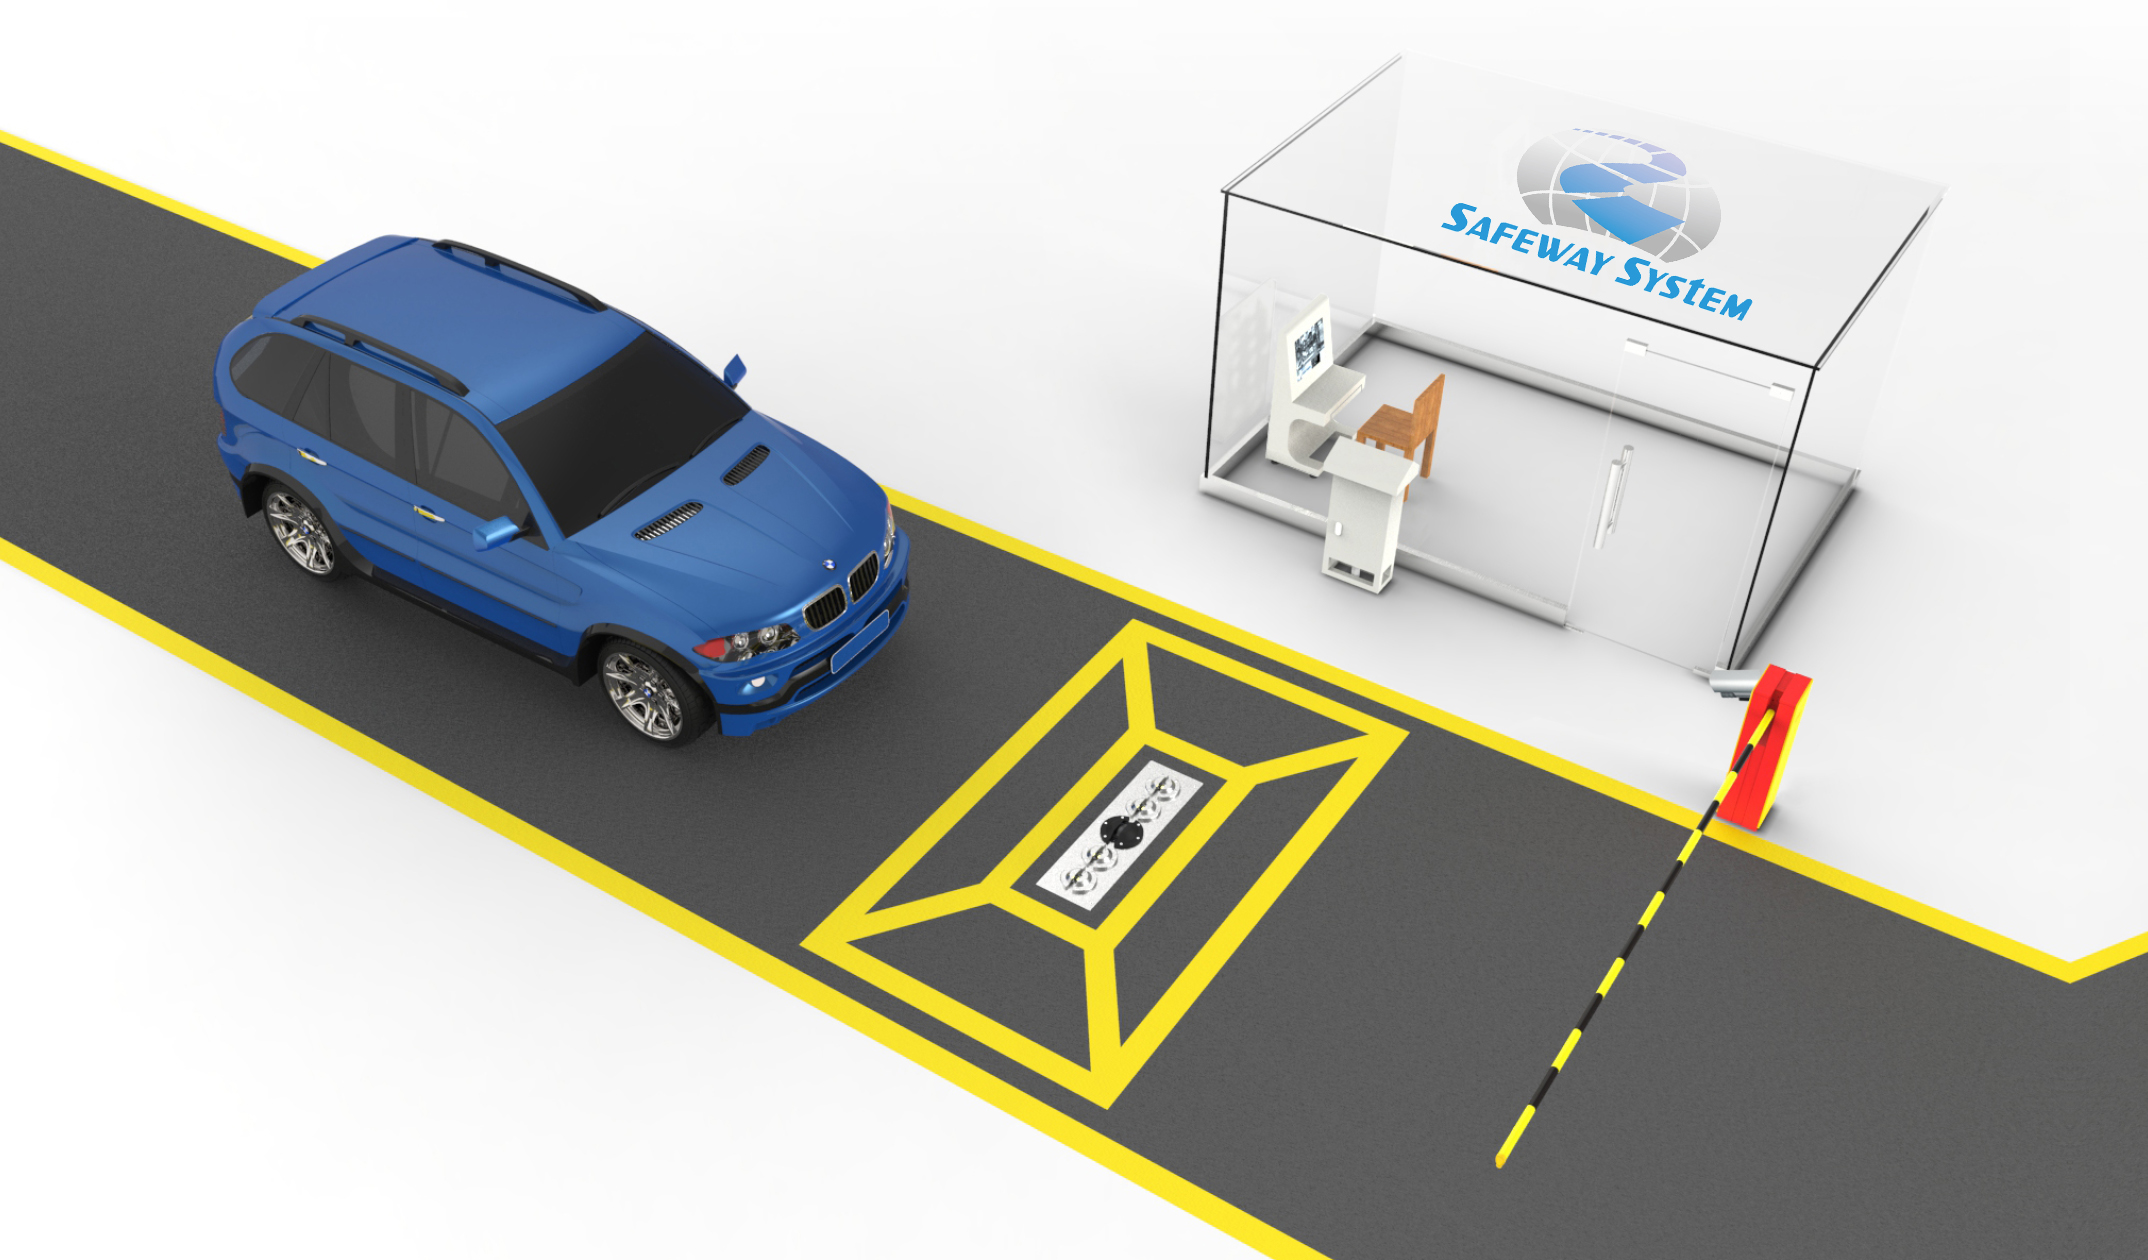 Under Vehicle Surveillance System - Car Scanner, Under Car Inspection